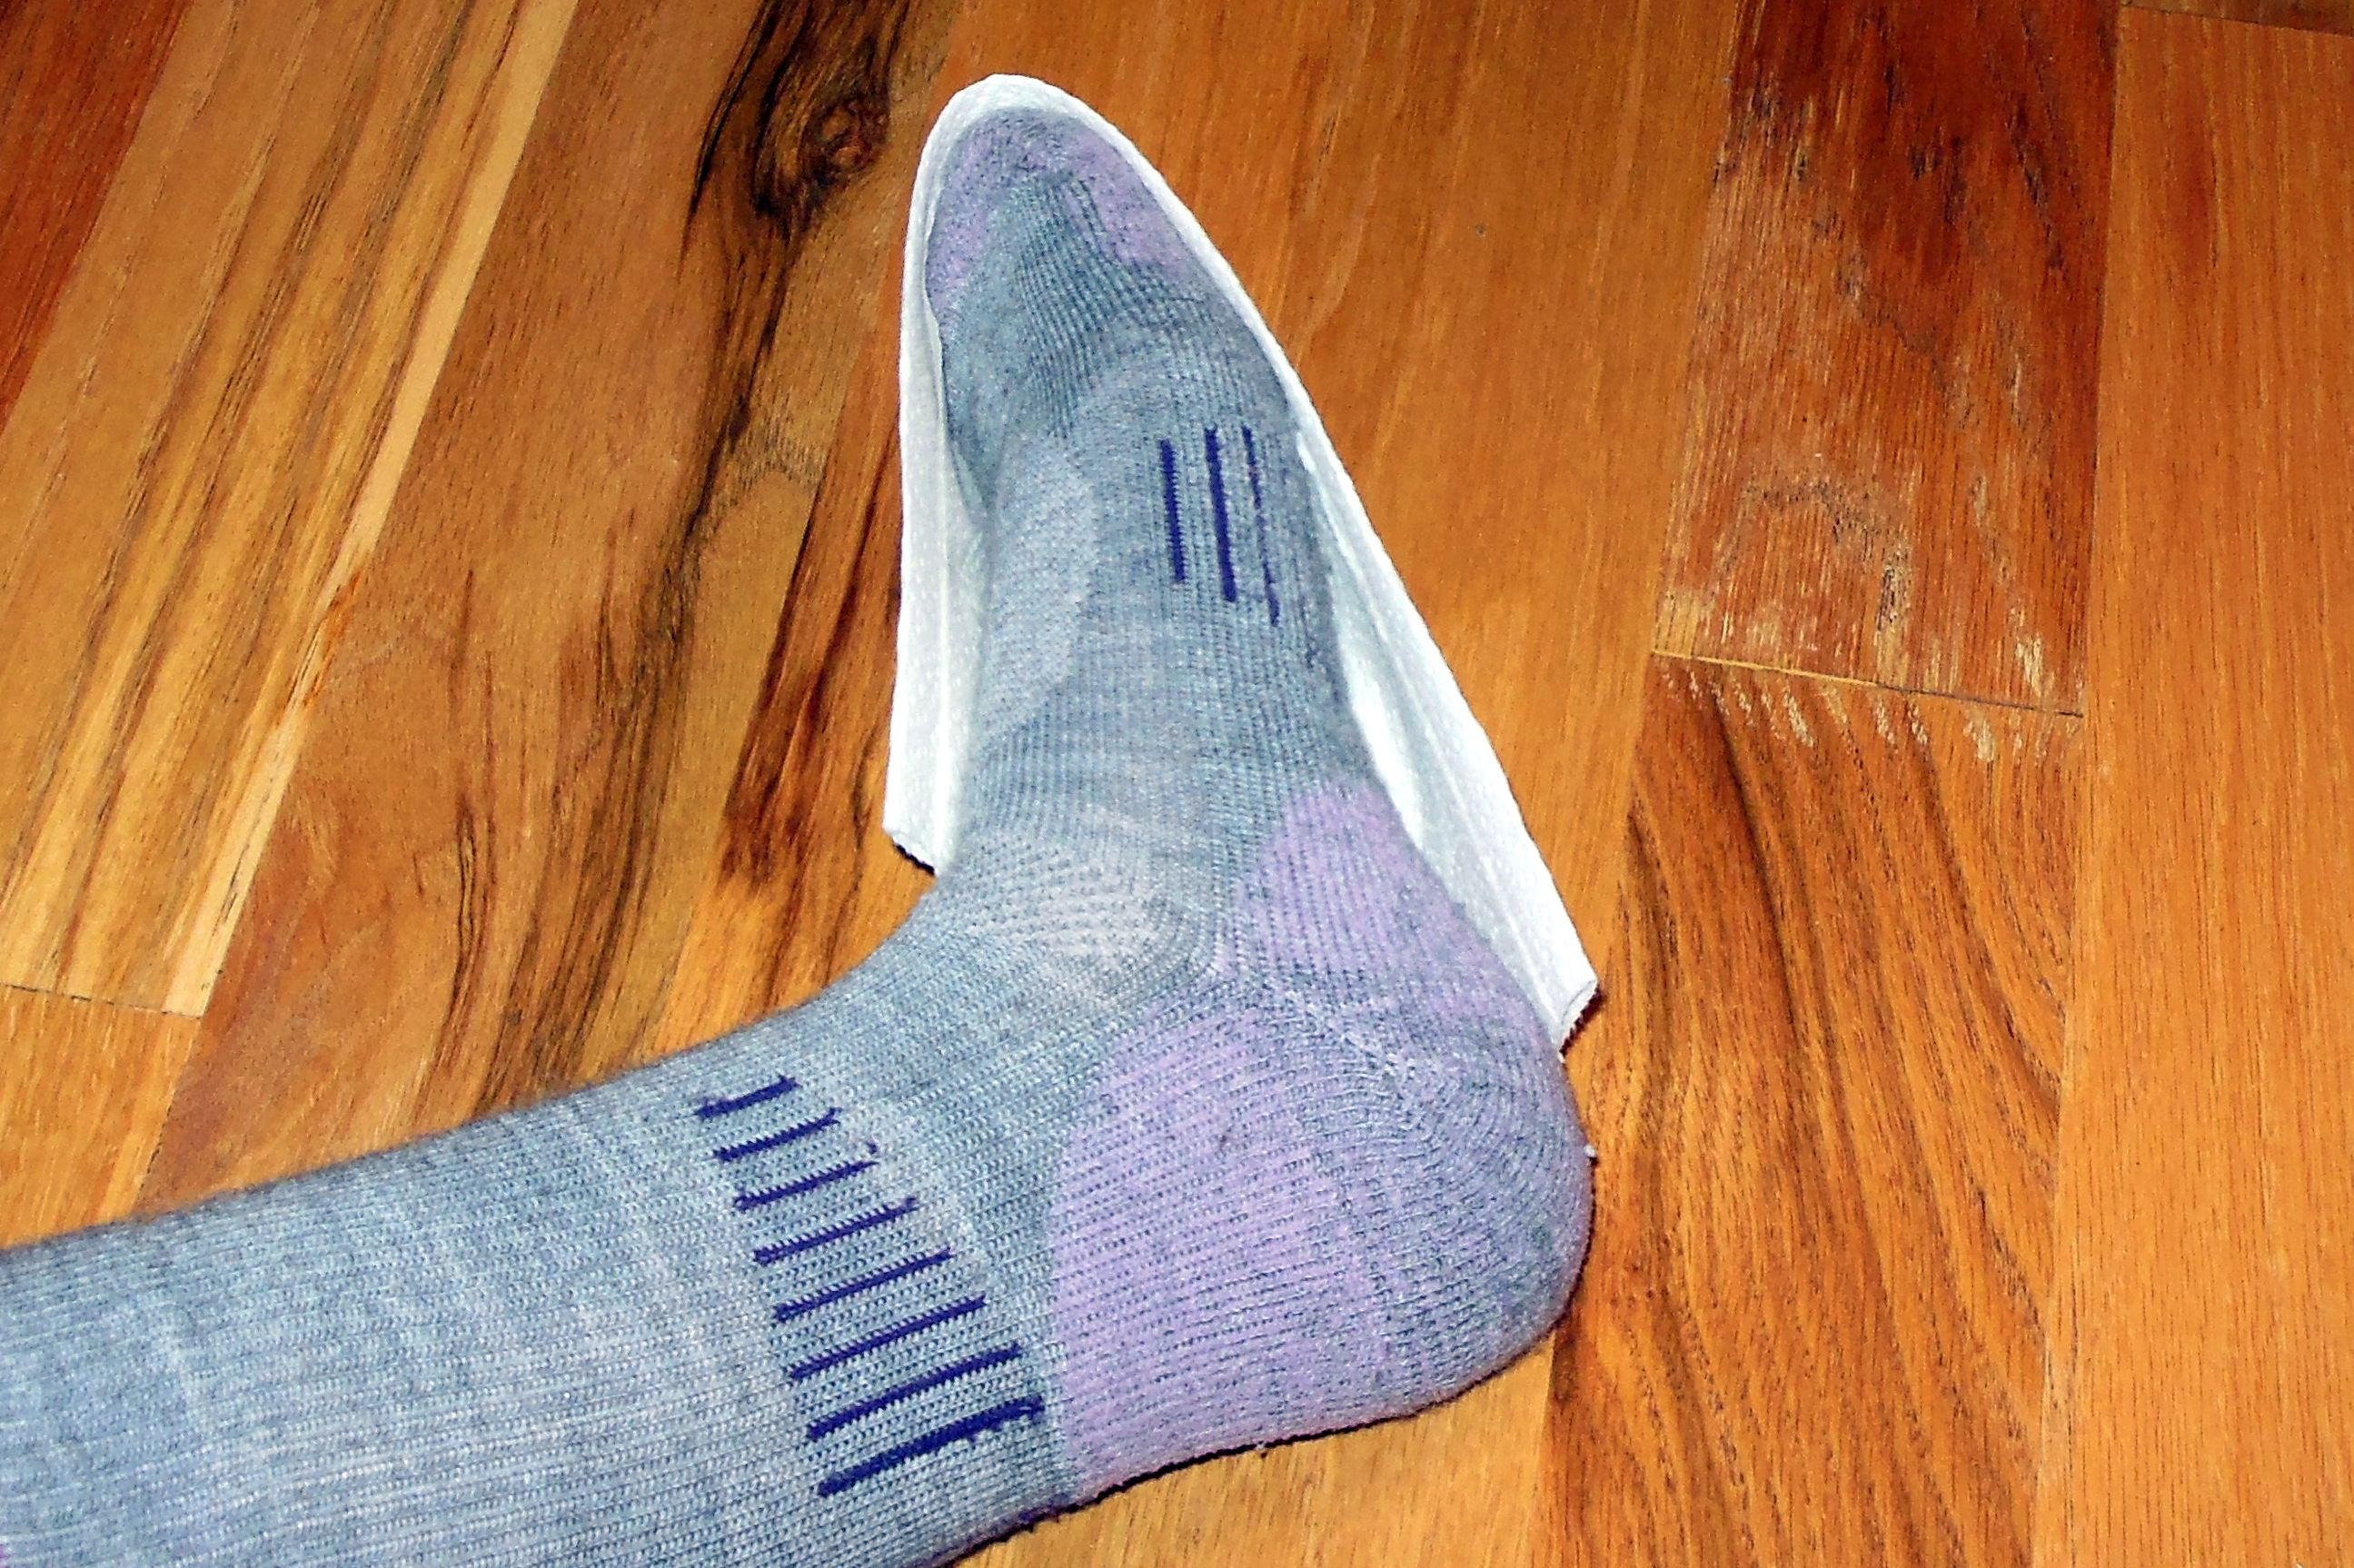 bcf5051398266 10 Ways to Keep Your Feet Warm on a Cold Weather Walk